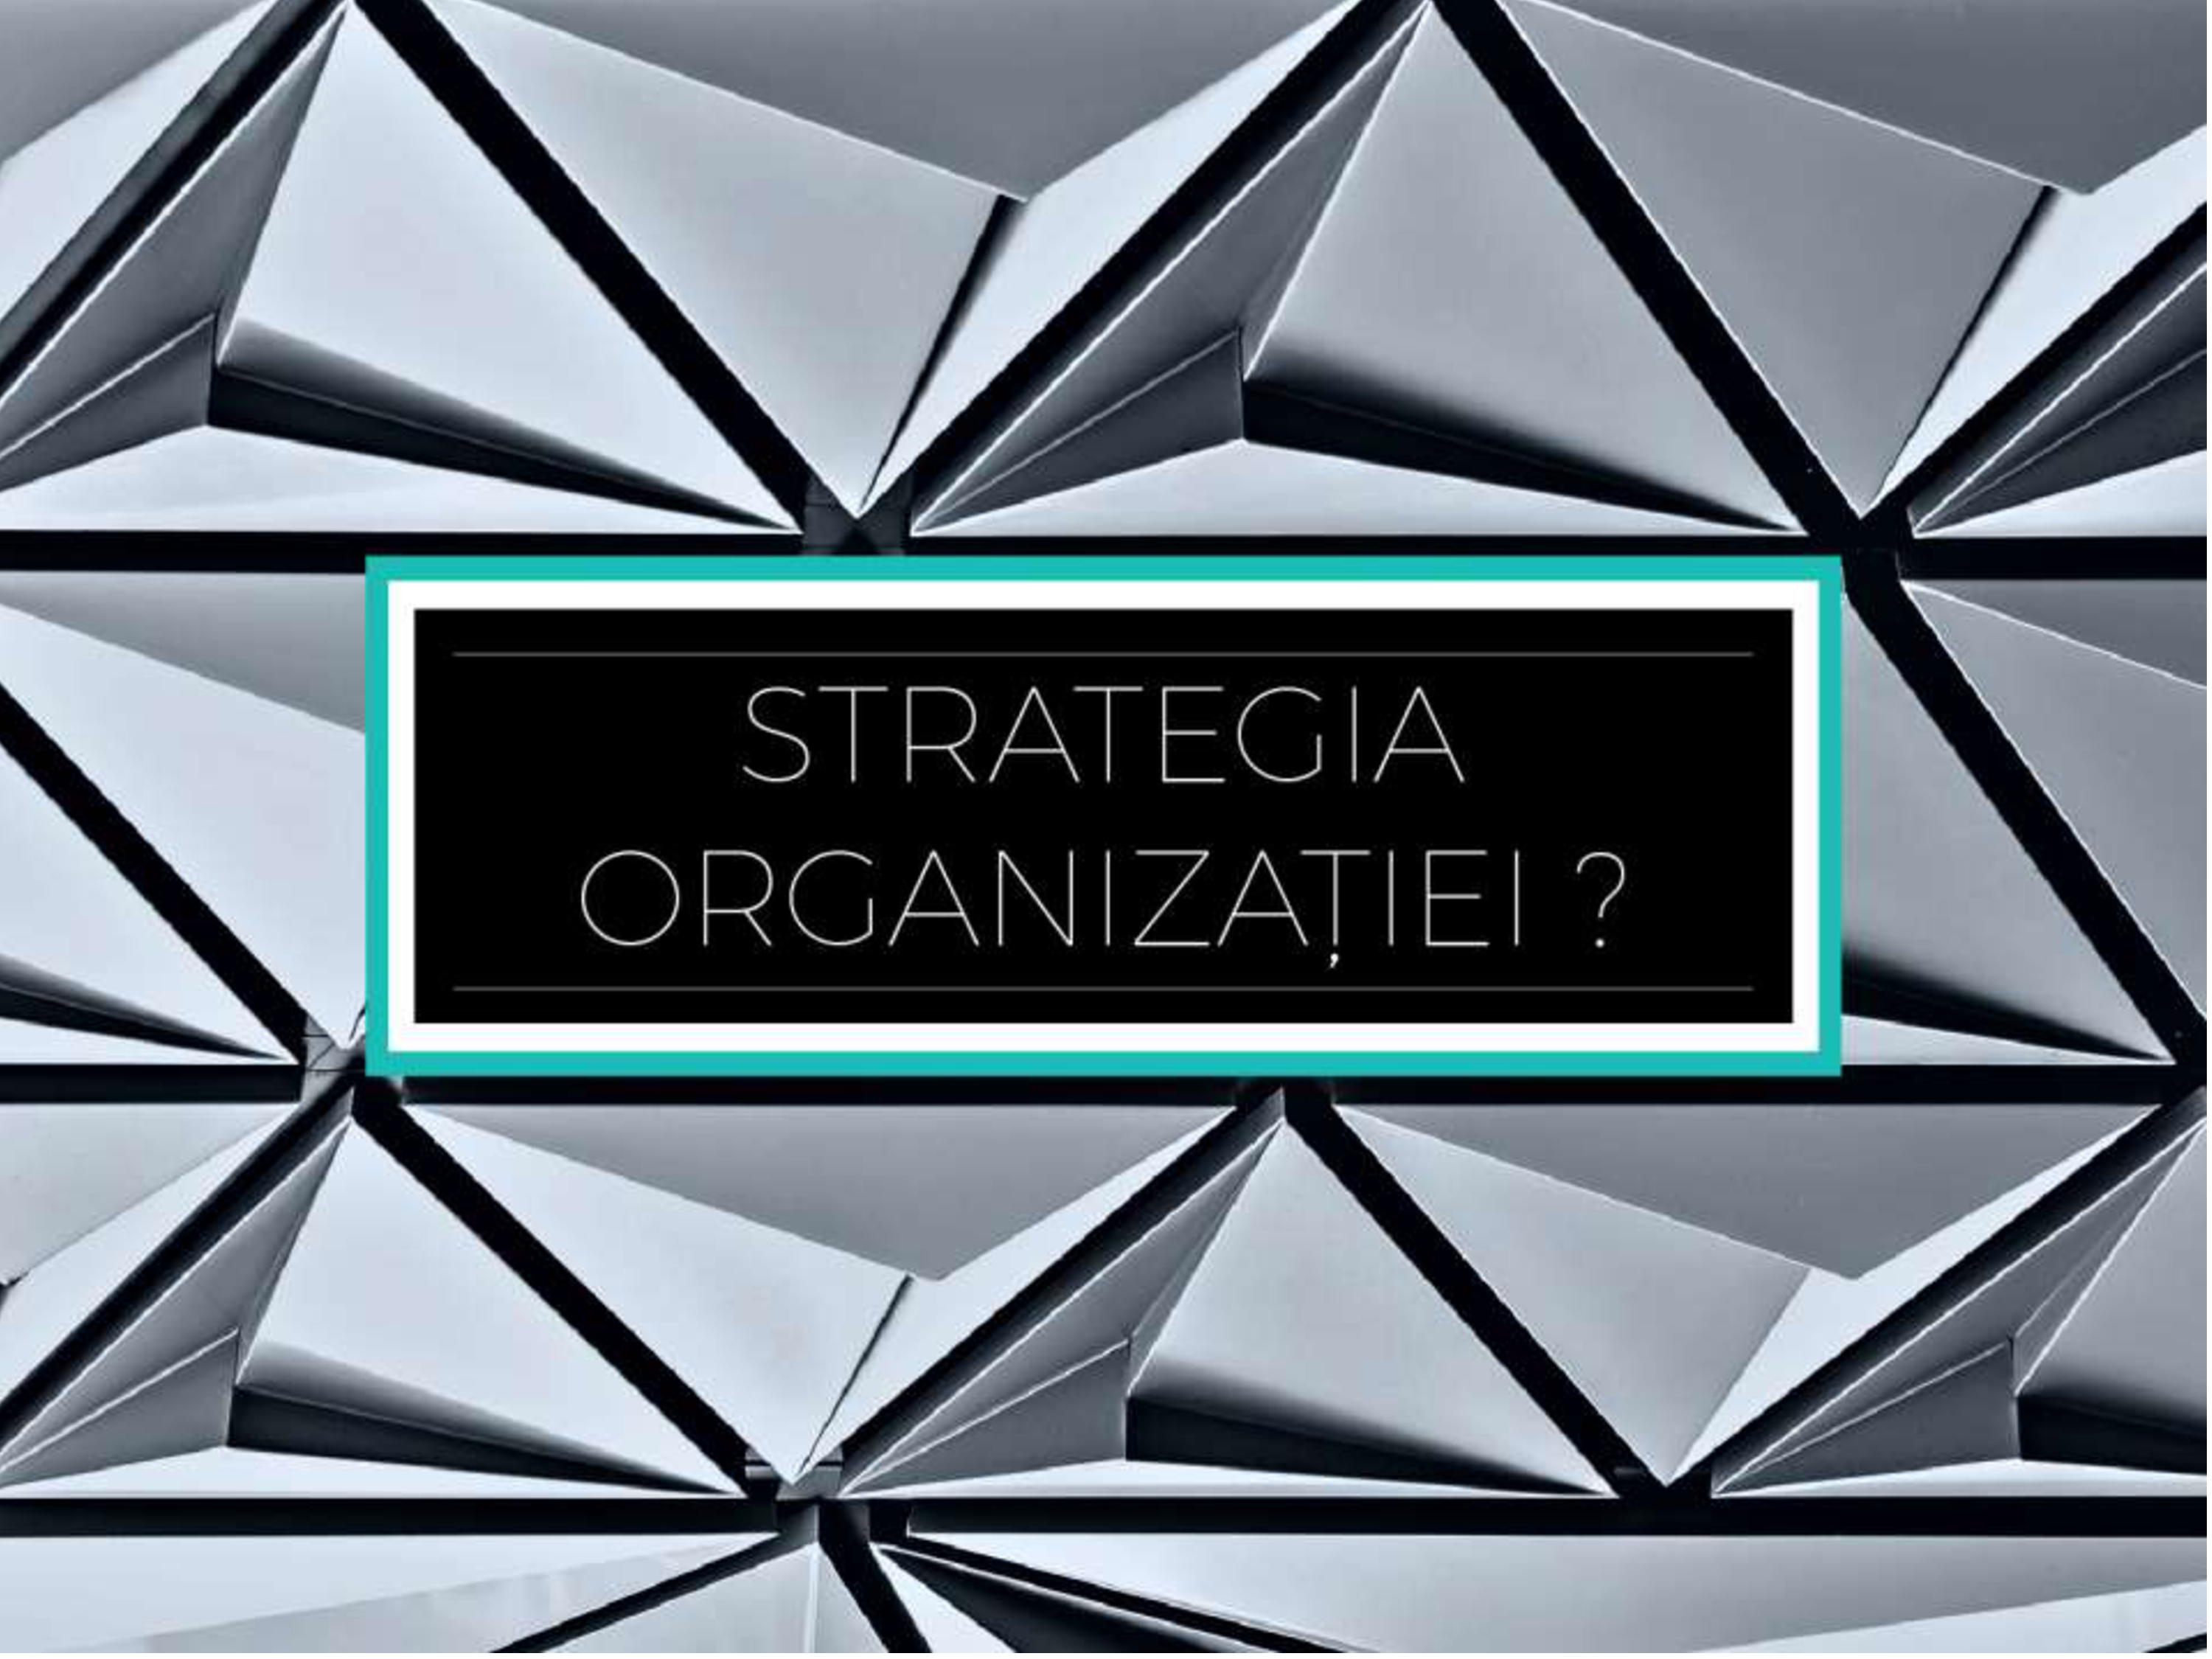 Pagina 1 - Strategia organizatiei